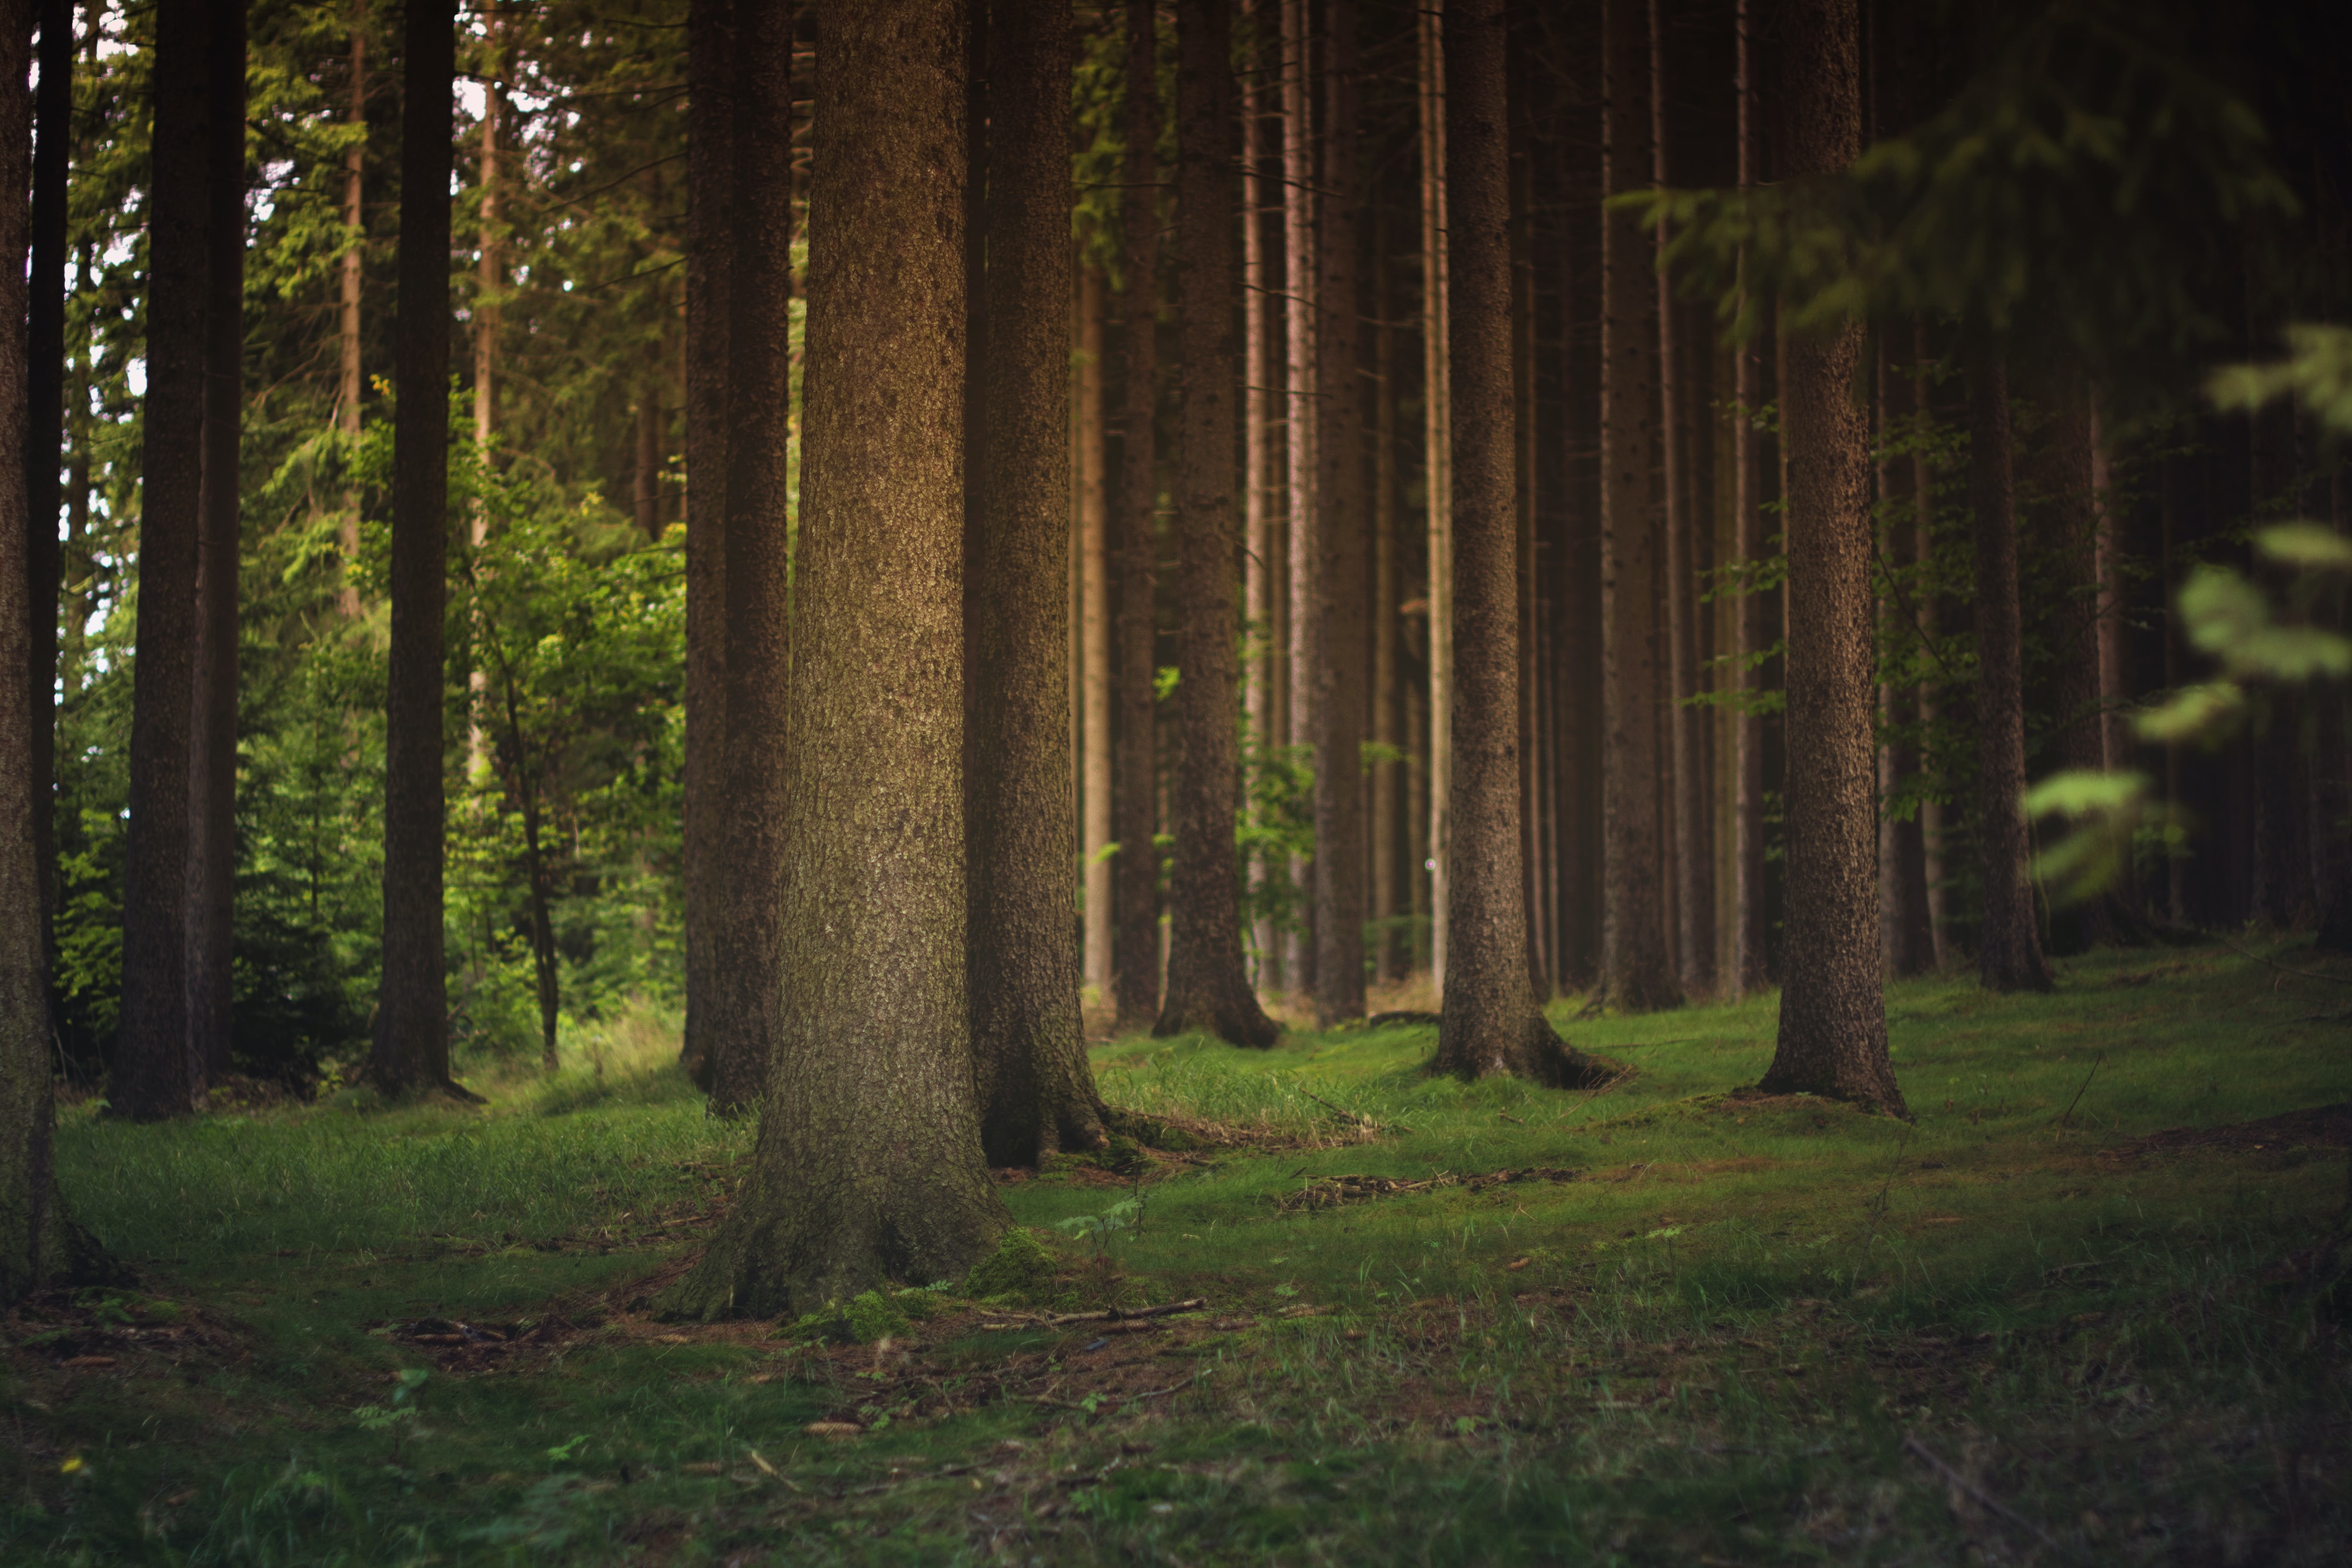 Tall coniferous trees on a grassy forest floor